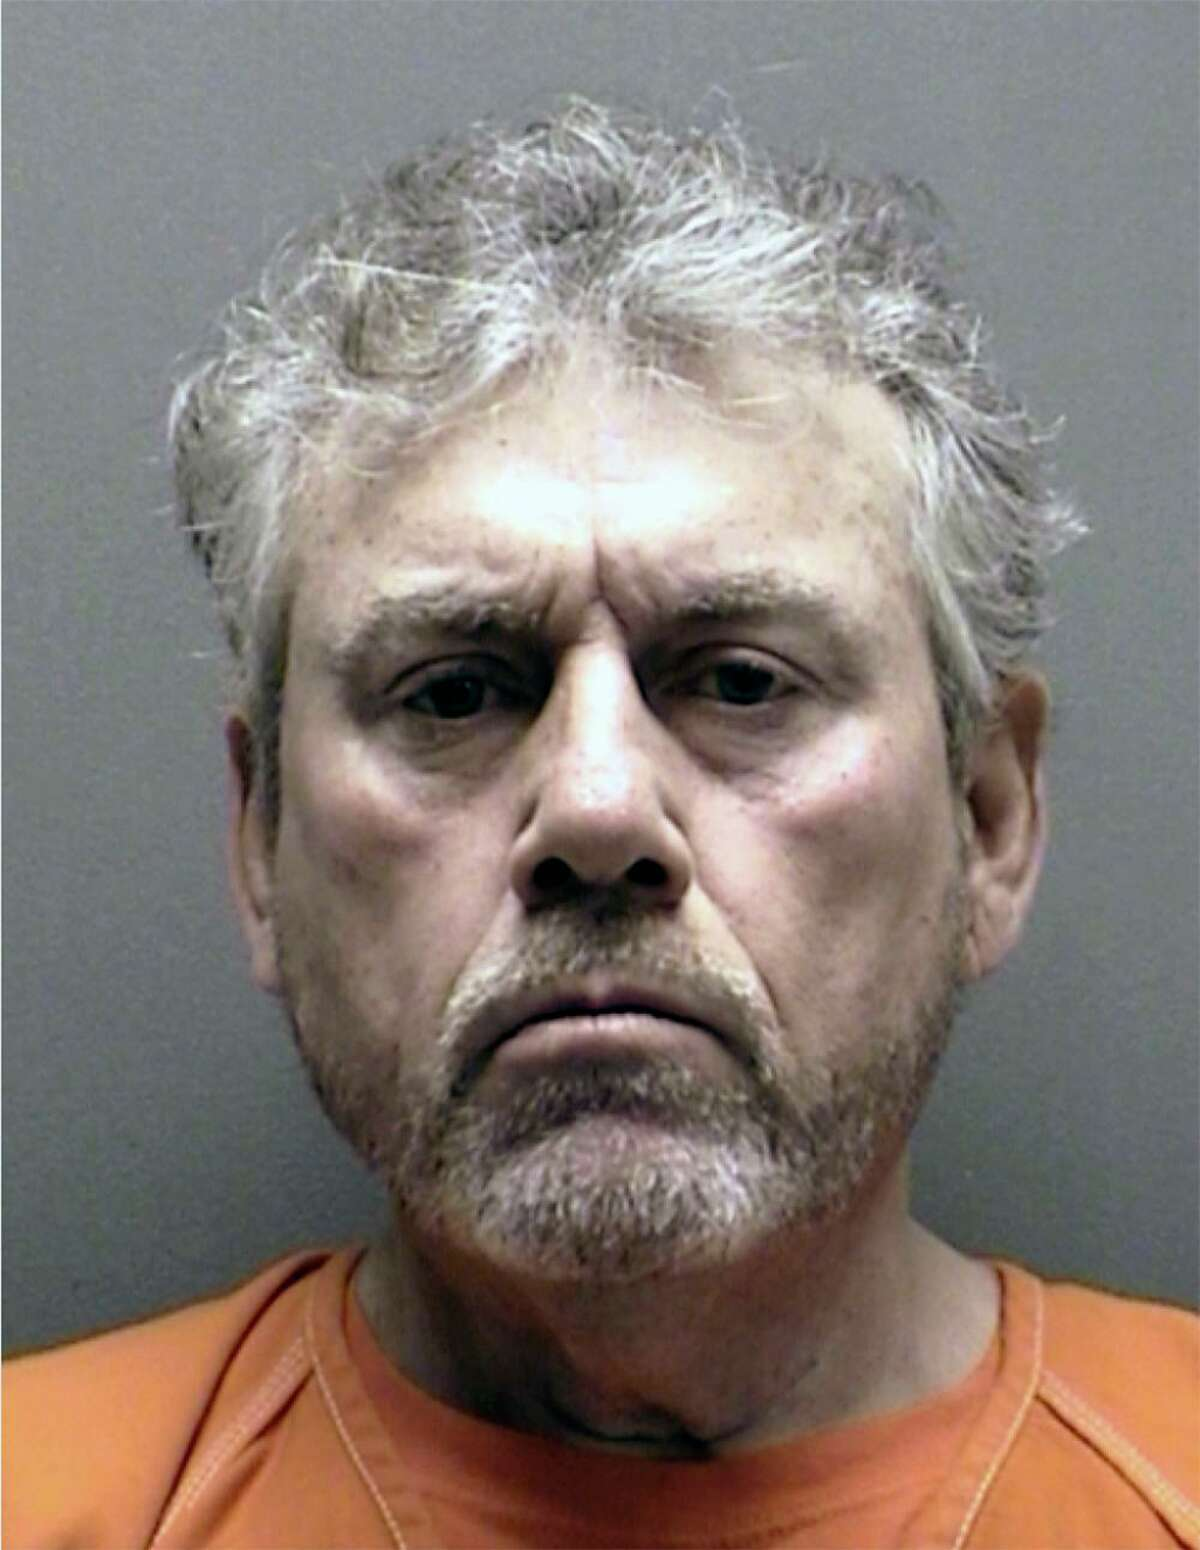 Two conspiracy theorists who claimed that the massacre that claimed 26 lives at the First Baptist Church of Sutherland Springs didn't actually happen were charged Tuesday, March 6, 2018. Robert Mikell Ussery, 54, was charged in Wilson County with making terroistic threats.